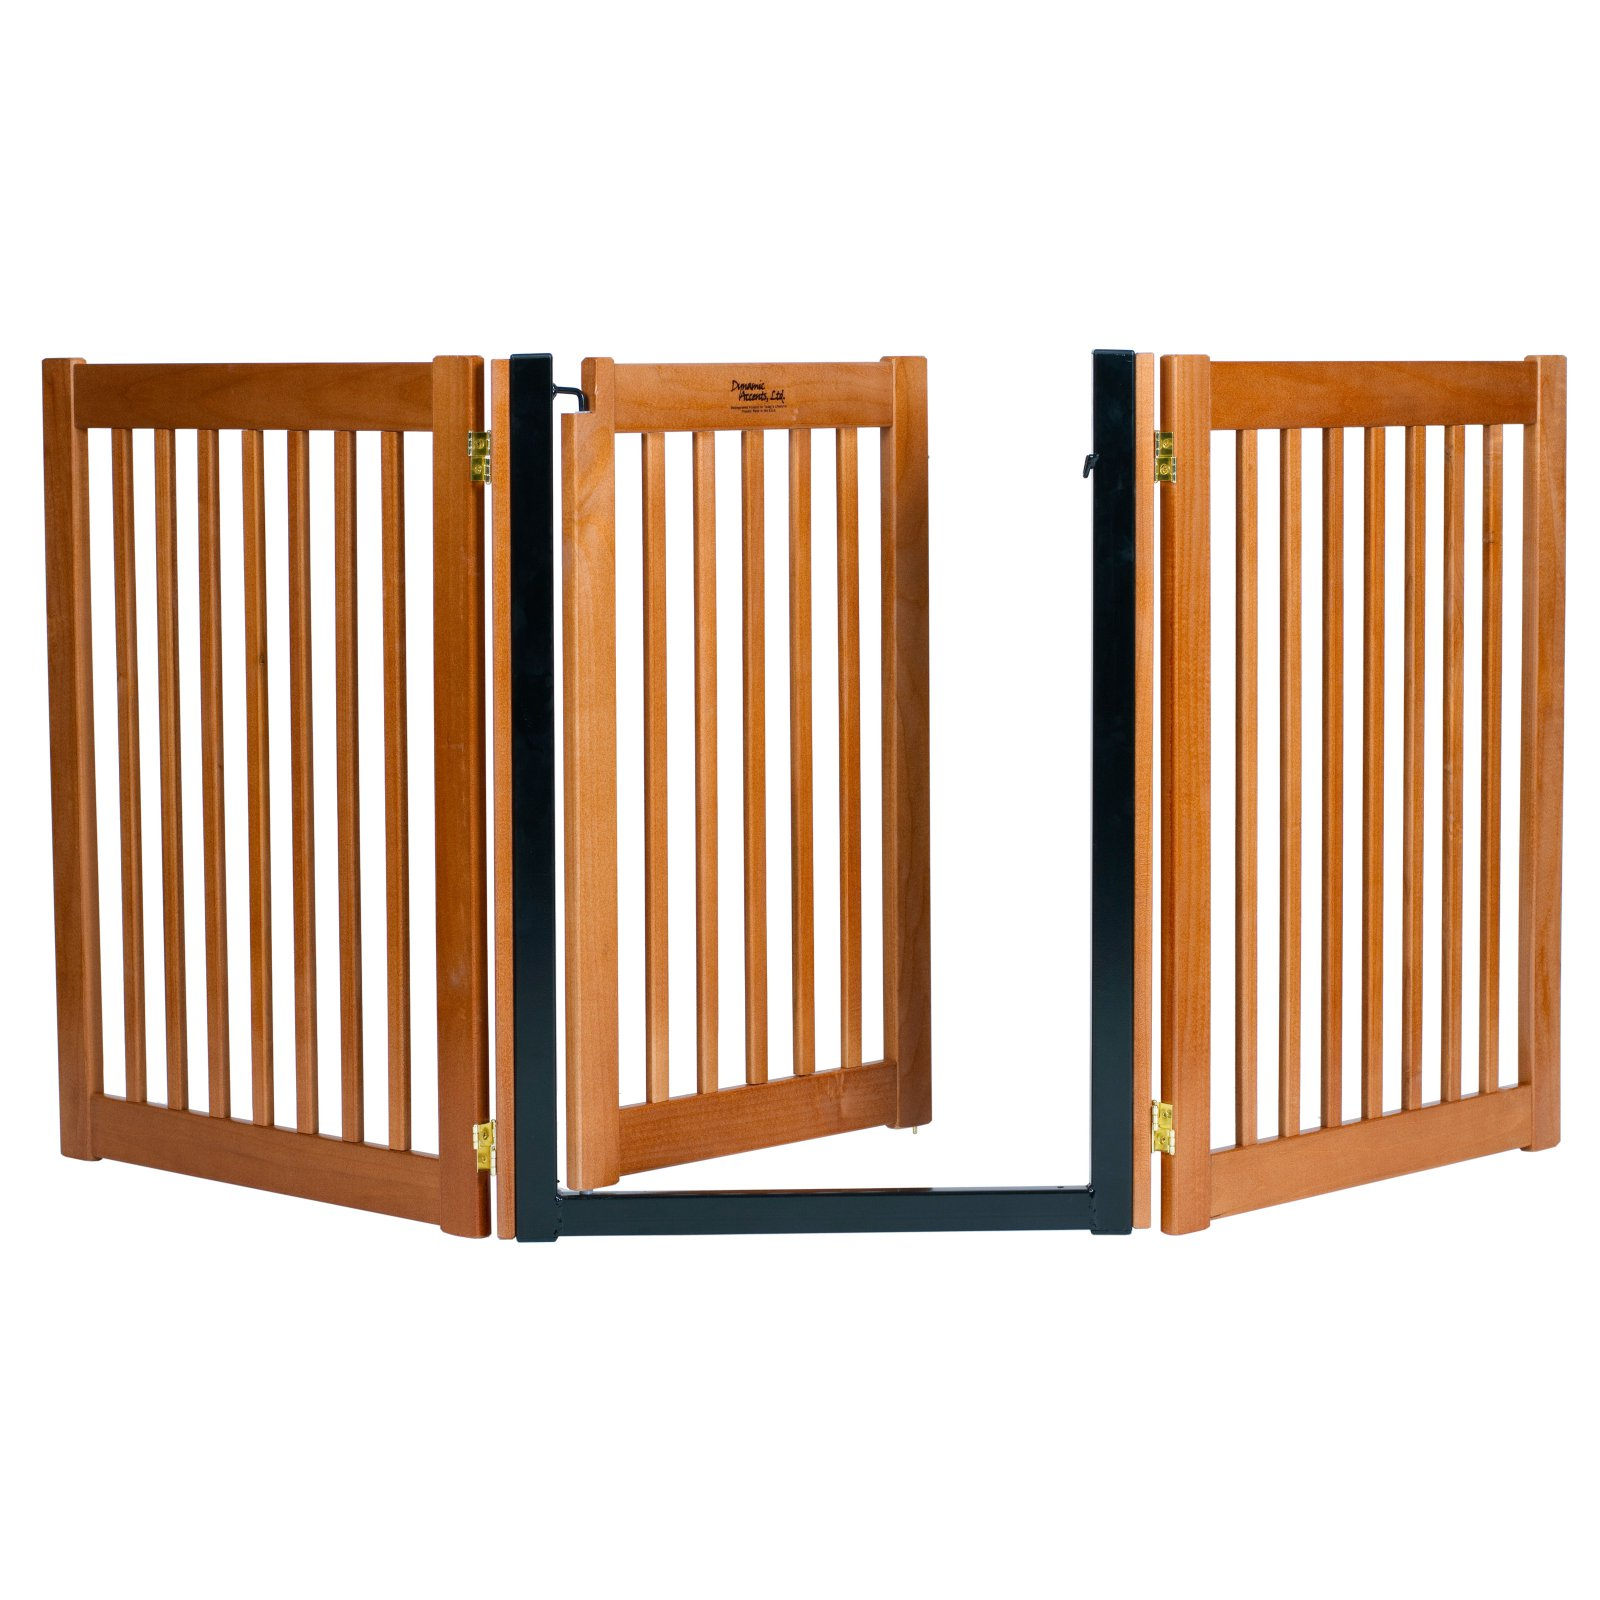 Dynamic Accents 32 in. Walk-Through 3 Panel Free Standing Gate - Artisan Bronze